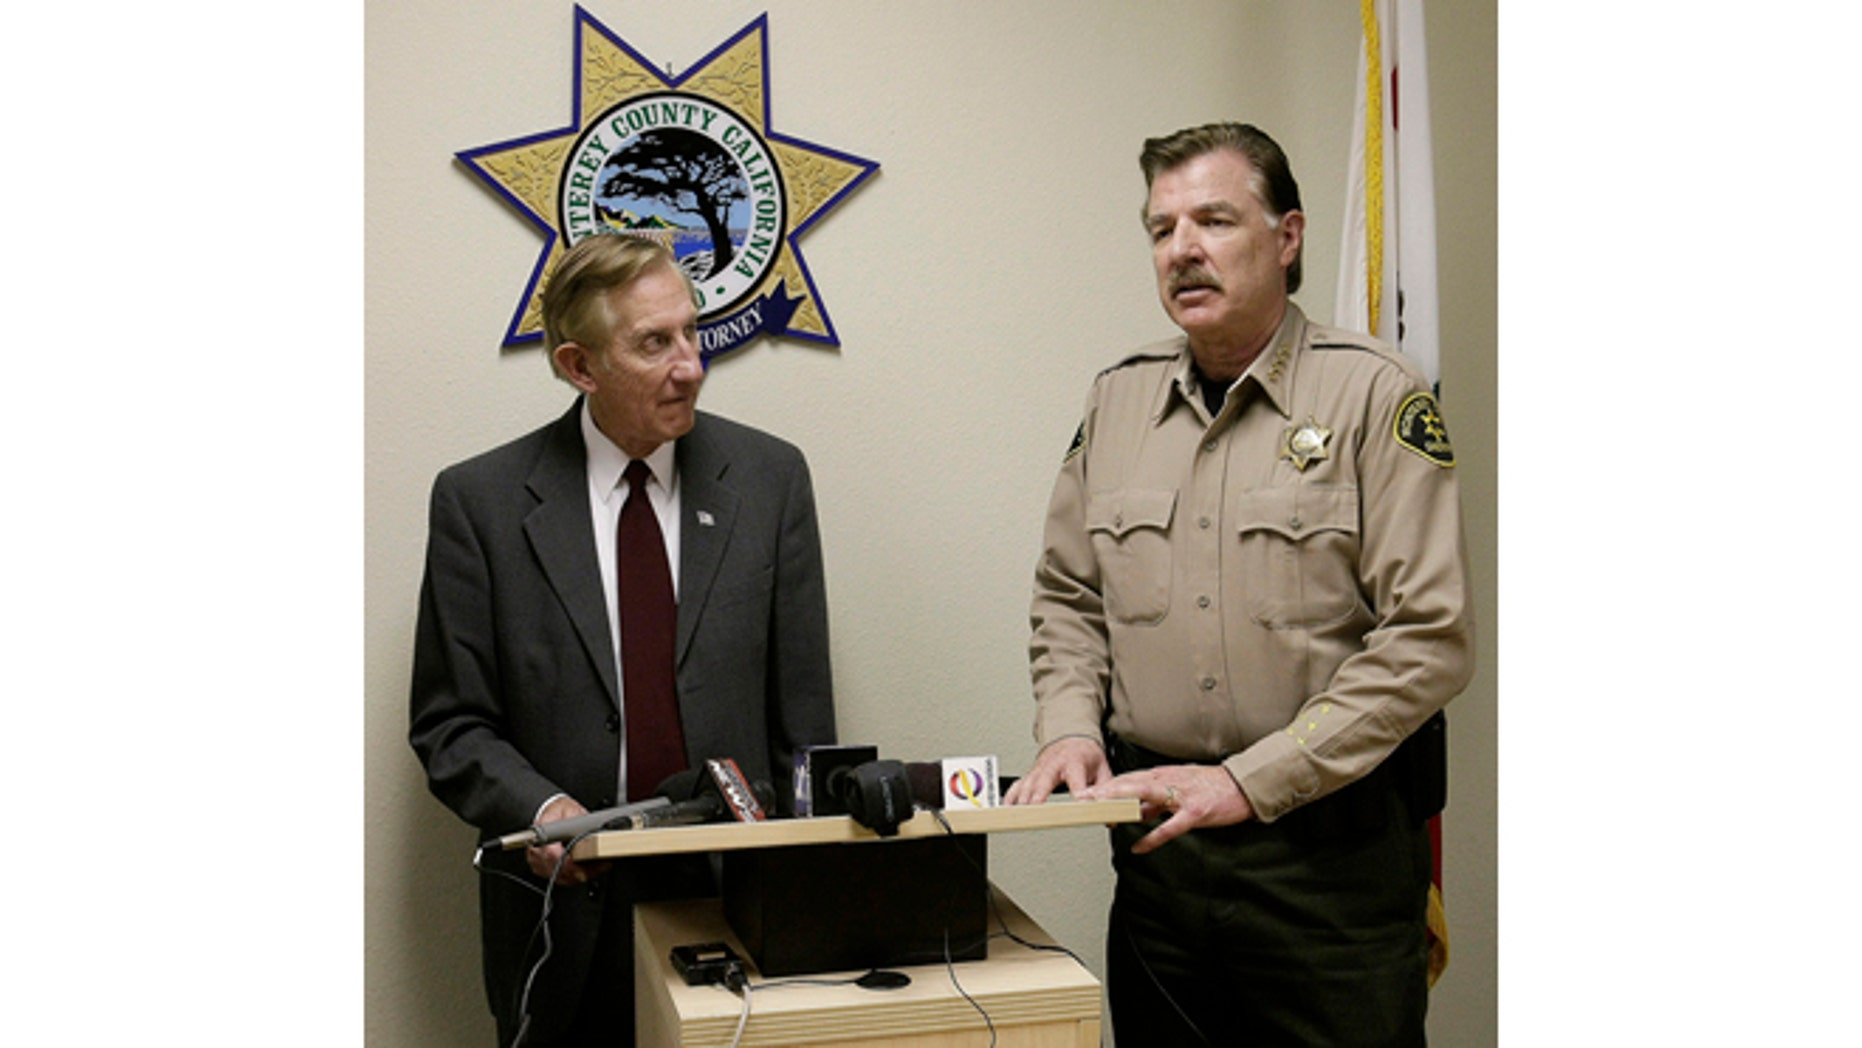 Monterey County District attorney Dean Flippo, left, and Monterey County Sheriff Scott Miller answer questions during a news conference, Tuesday, Feb. 25, 2014, in Salinas, Calif. Flippo said the six officers, including the recently retired police chief and the acting chief, have been arrested, in connection to a scheme to steal more than 200 cars from poor Hispanic people. (AP Photo/The Monterey County Herald, Vern Fisher)